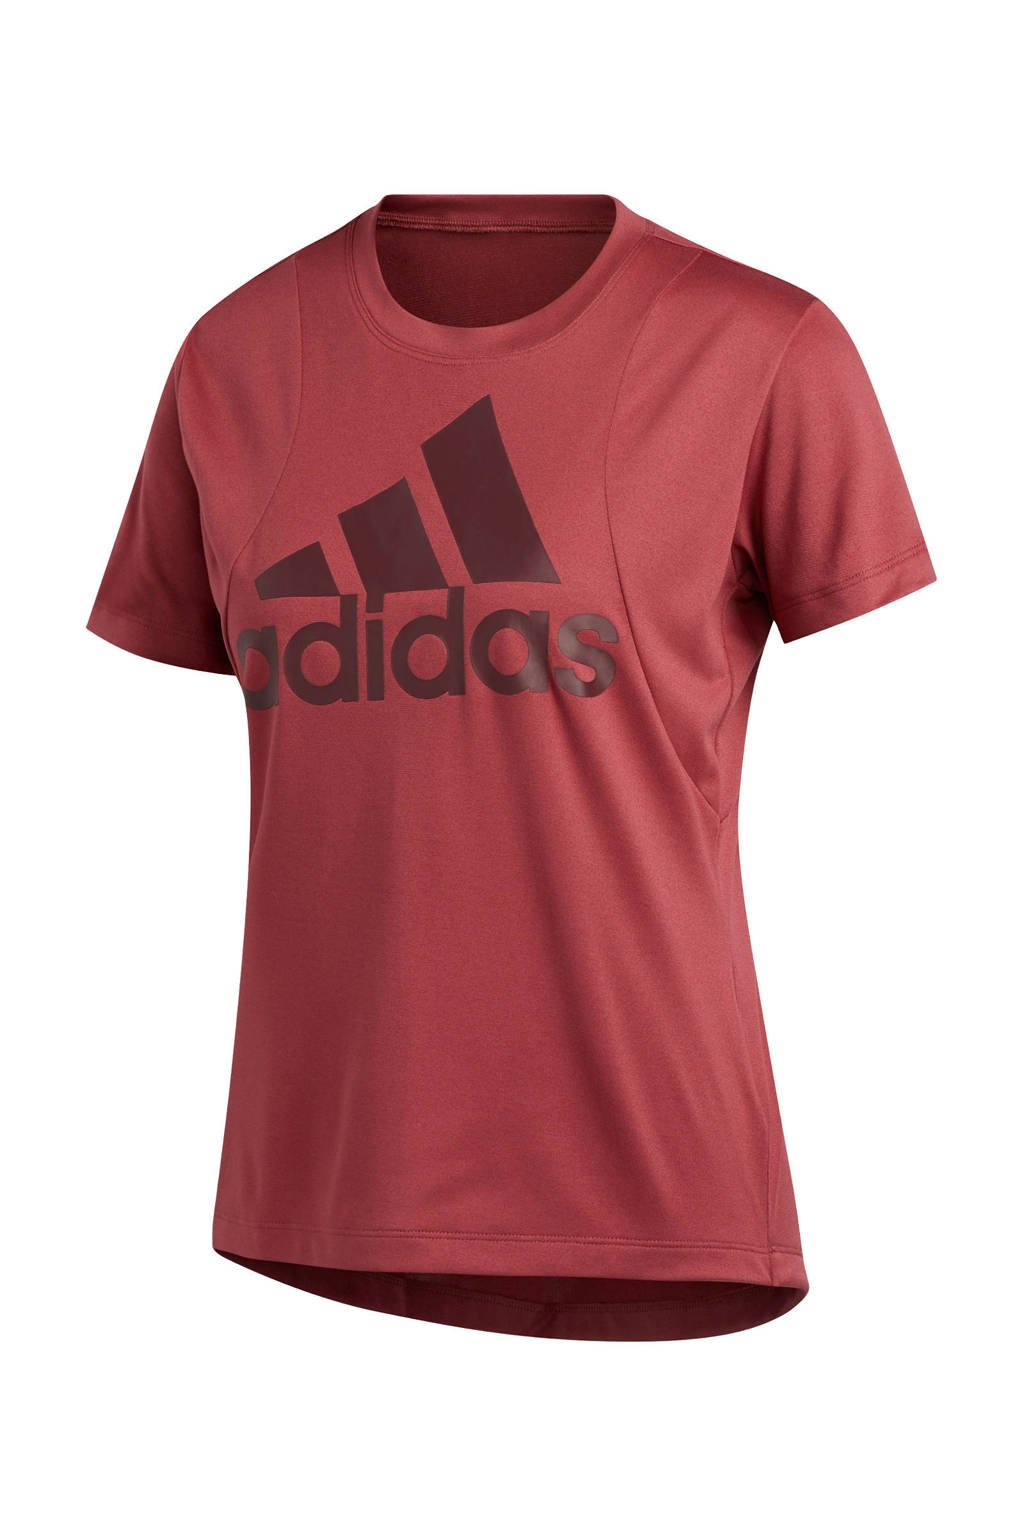 adidas Performance sport T-shirt donkerrood, Donkerrood